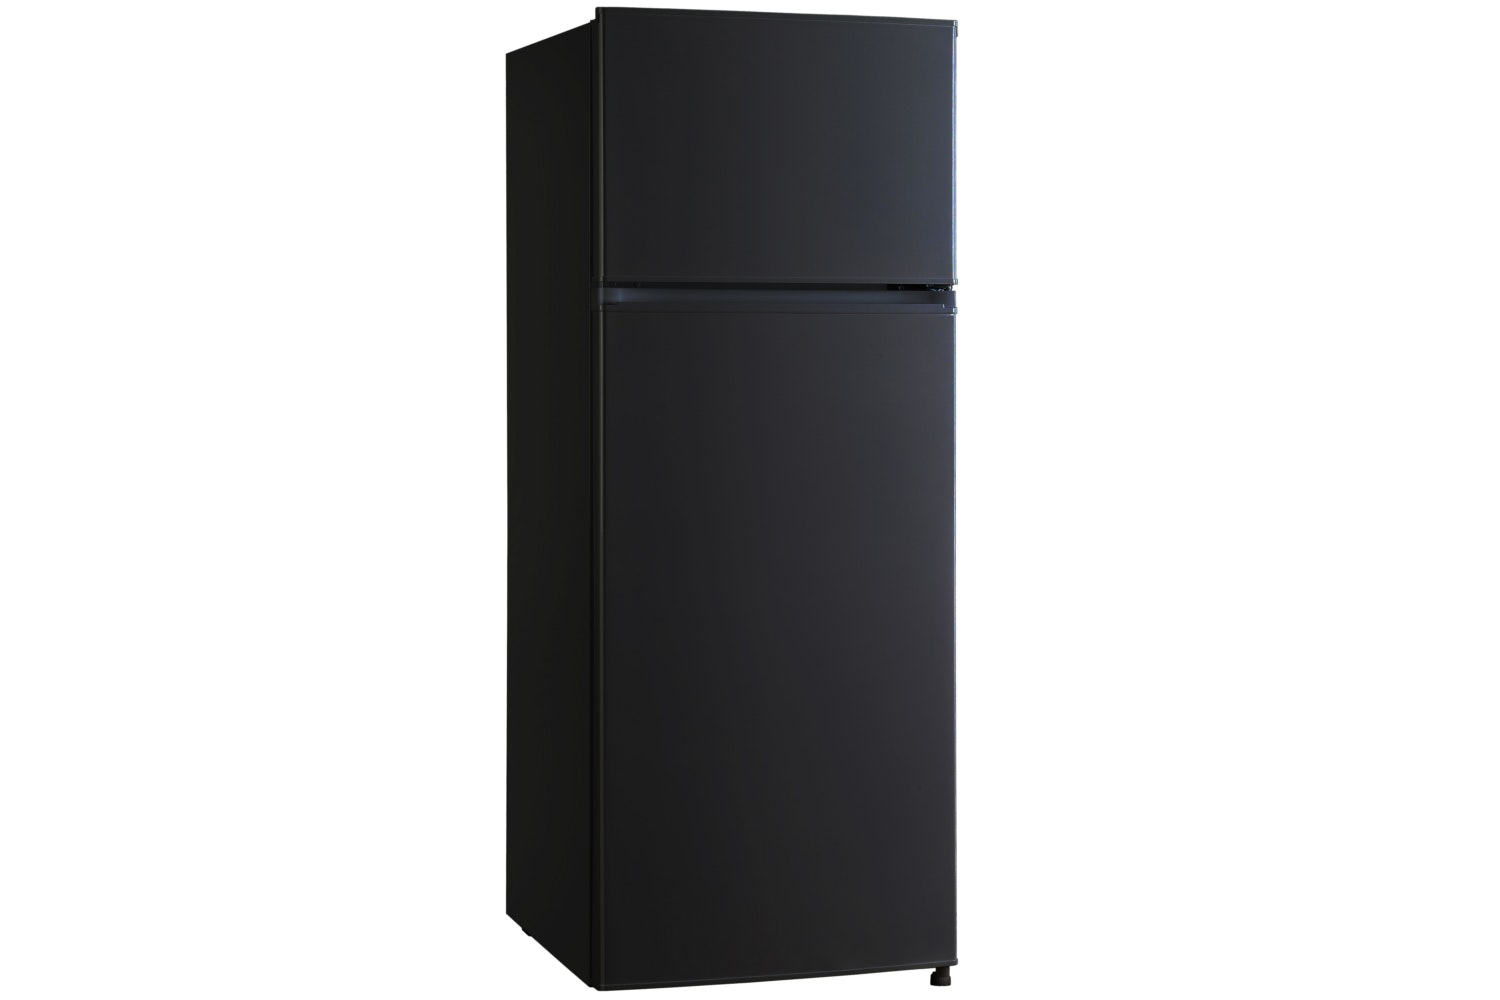 Belling Freestanding Fridge Freezer | BFF207BK